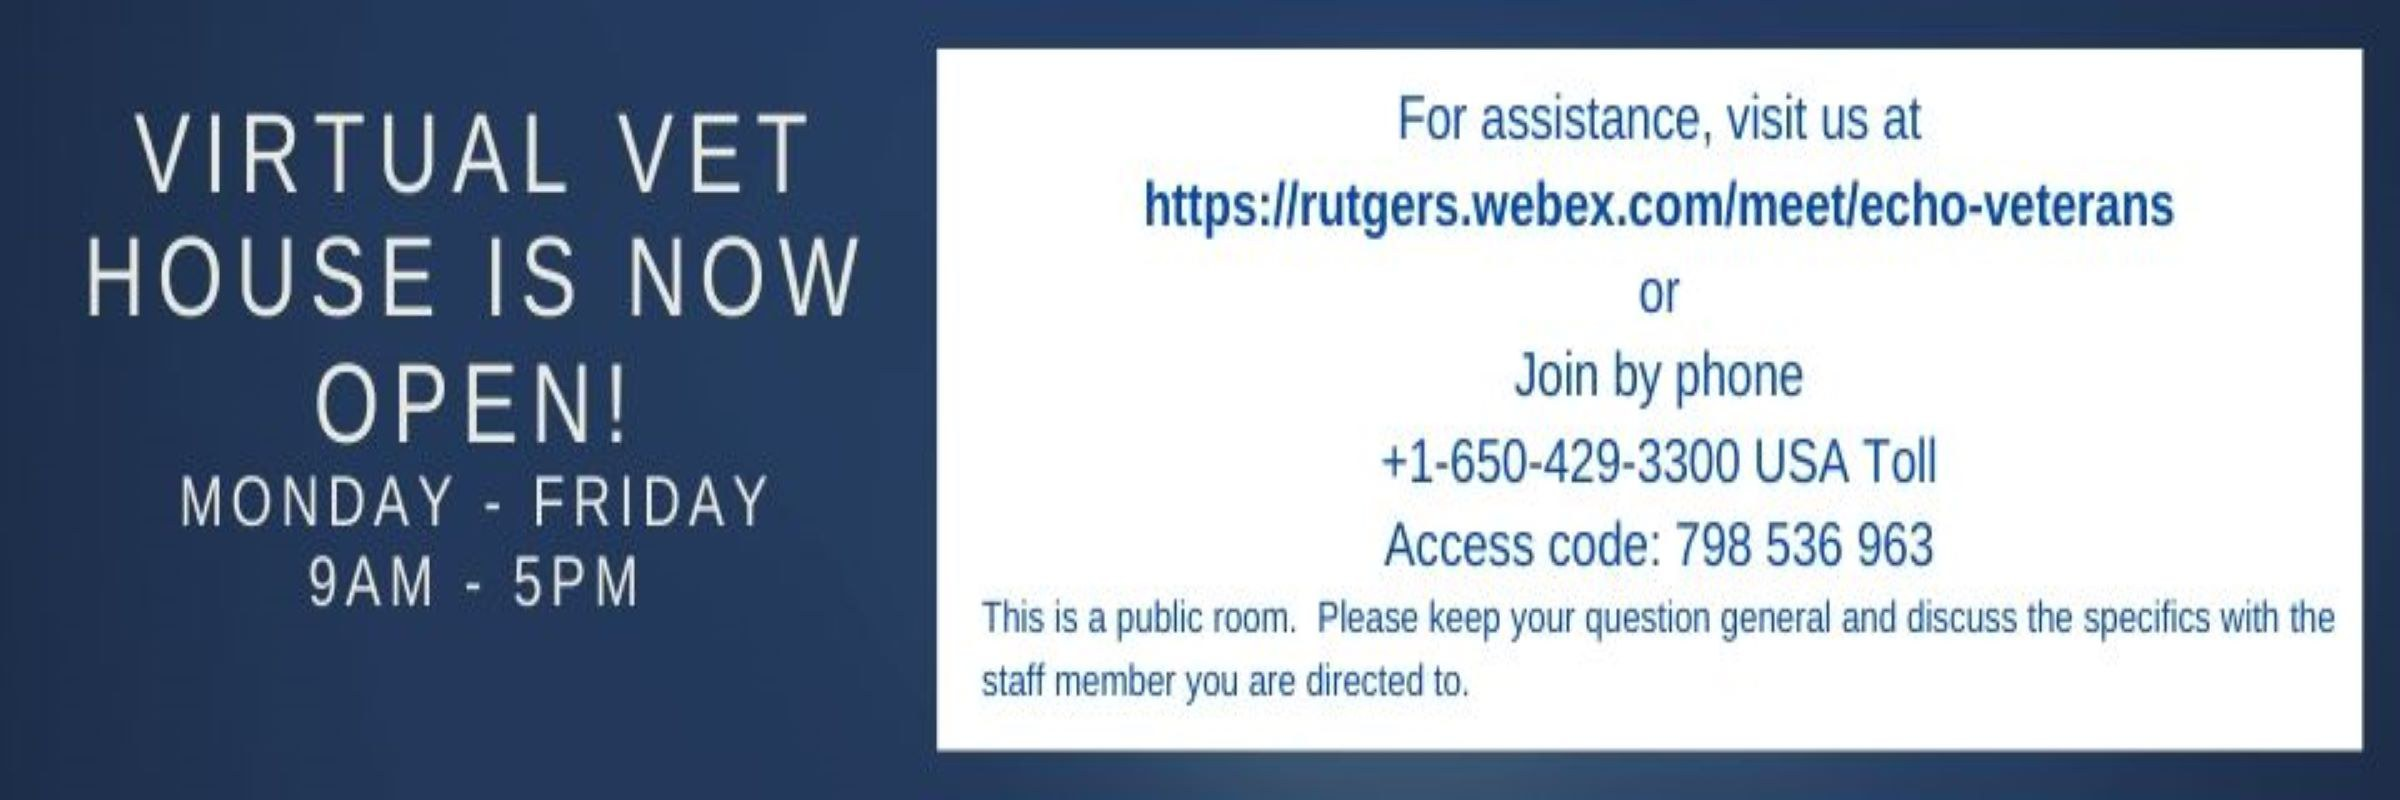 Virtual Veterans House is accessible via this website. https://rutgers.webex.com/meet/echo-veterans